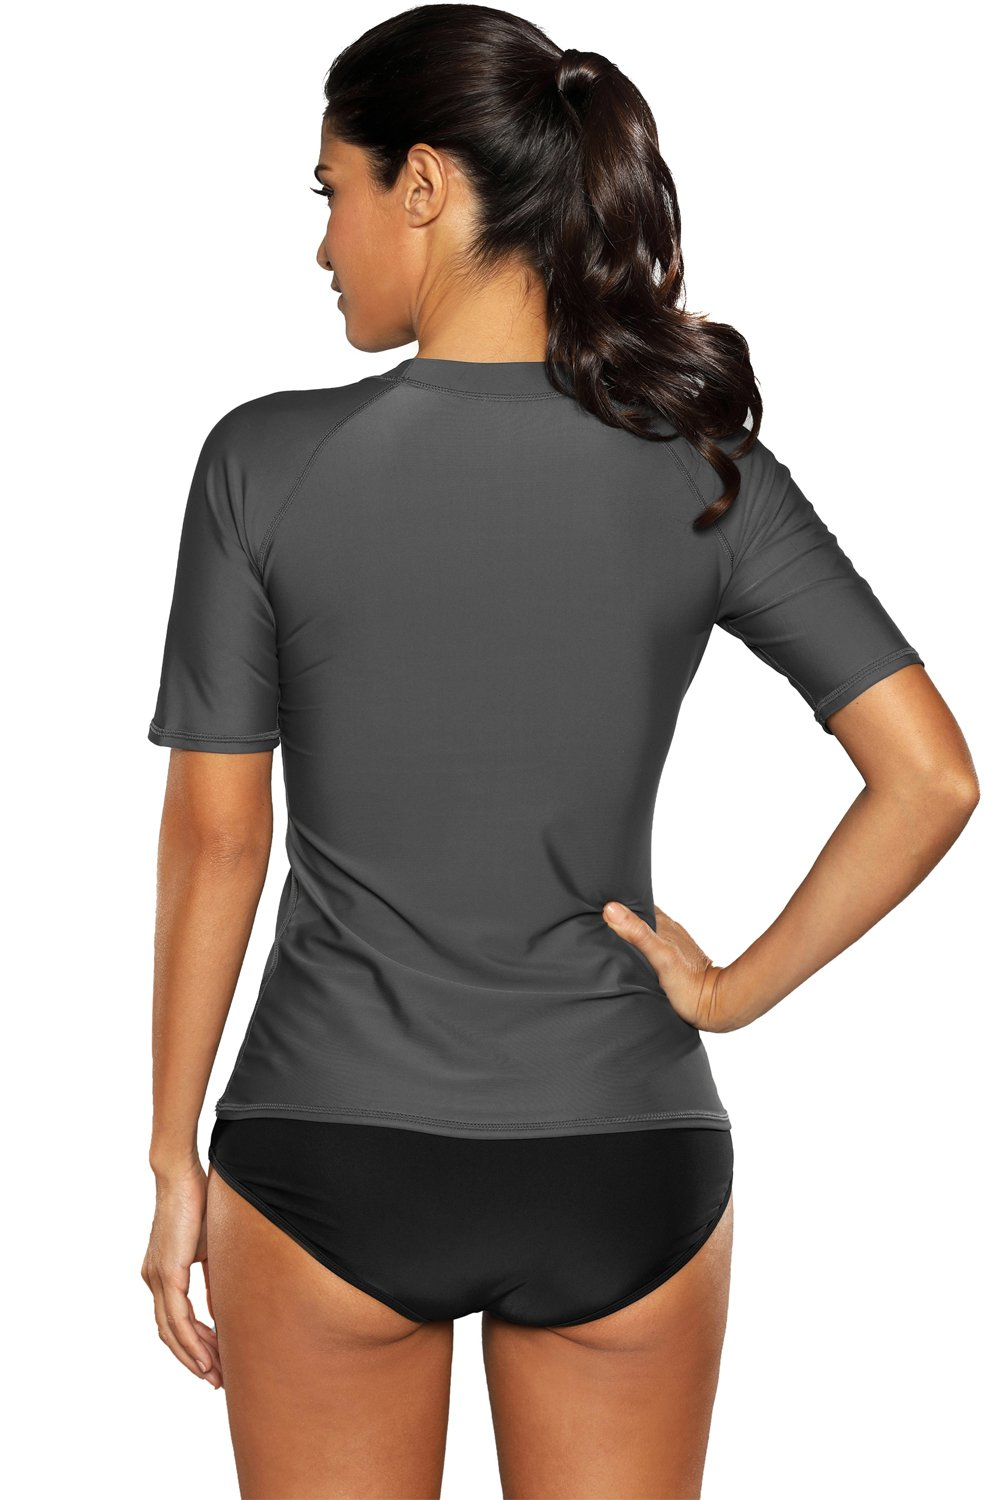 V FOR CITY Womens Swimwear Short Sleeve UV Rash Guard Sport Swimsuit UPF 50+ Rashguards L by V FOR CITY (Image #7)